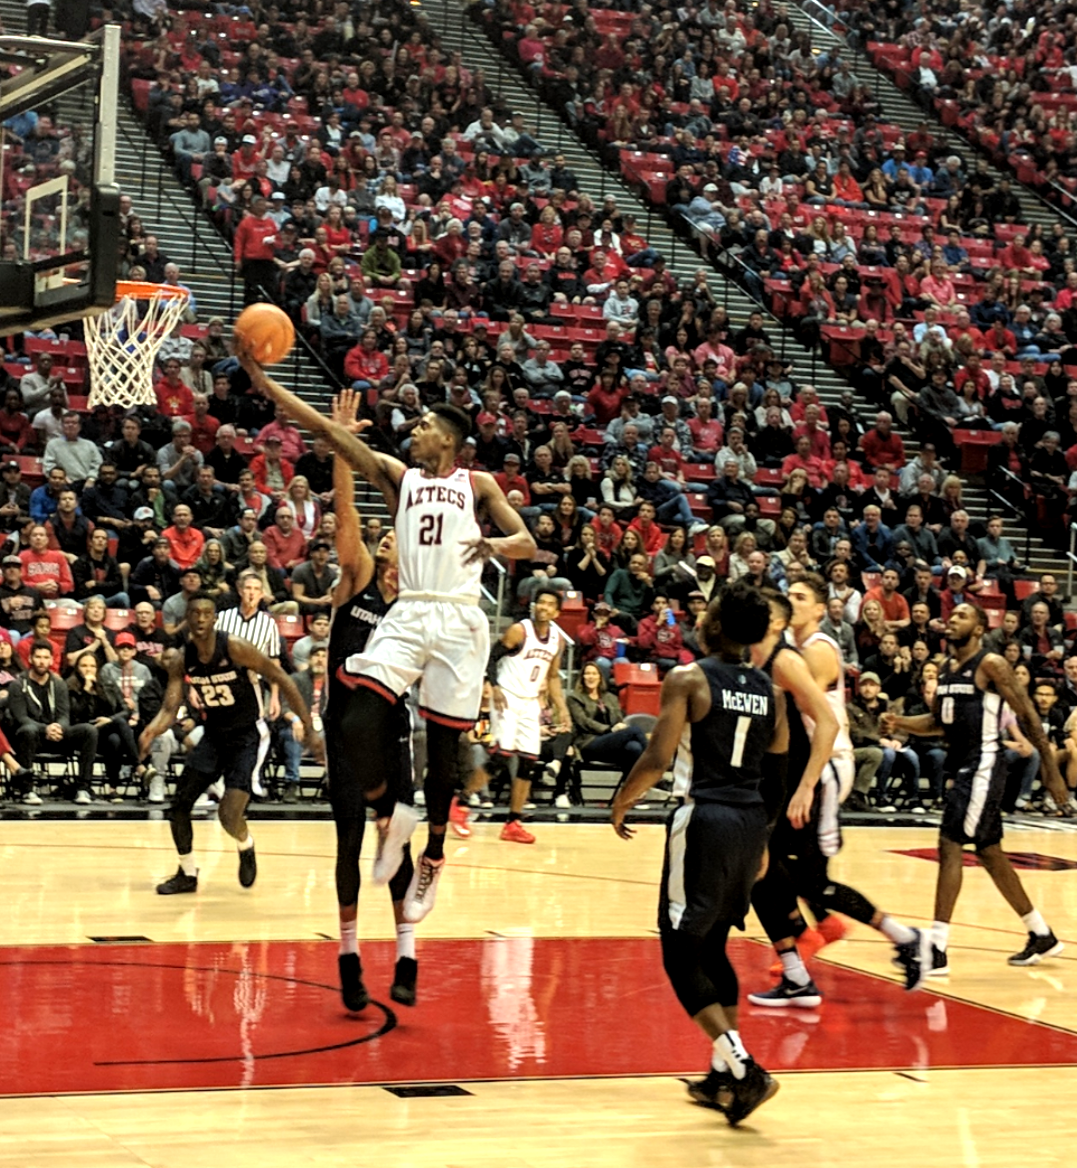 Malik Pope attempts a layup during the Aztecs 79-59 victory over Utah State at Viejas Arena on Dec. 30